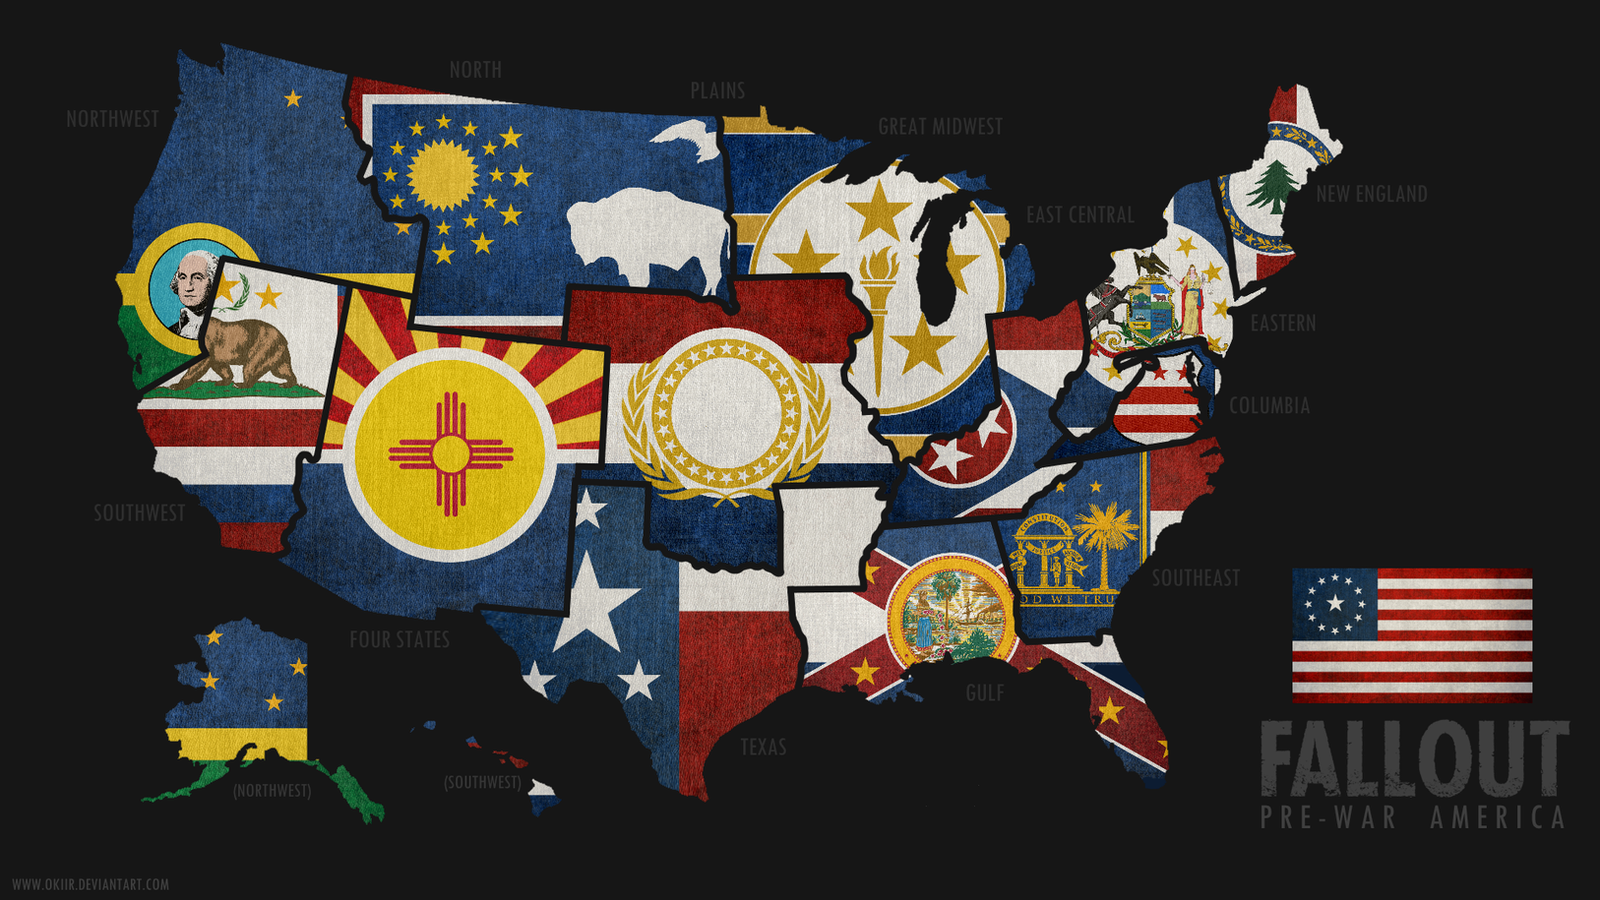 FALLOUT Map Of PreWar America By Okiir On DeviantArt - Us map american flag